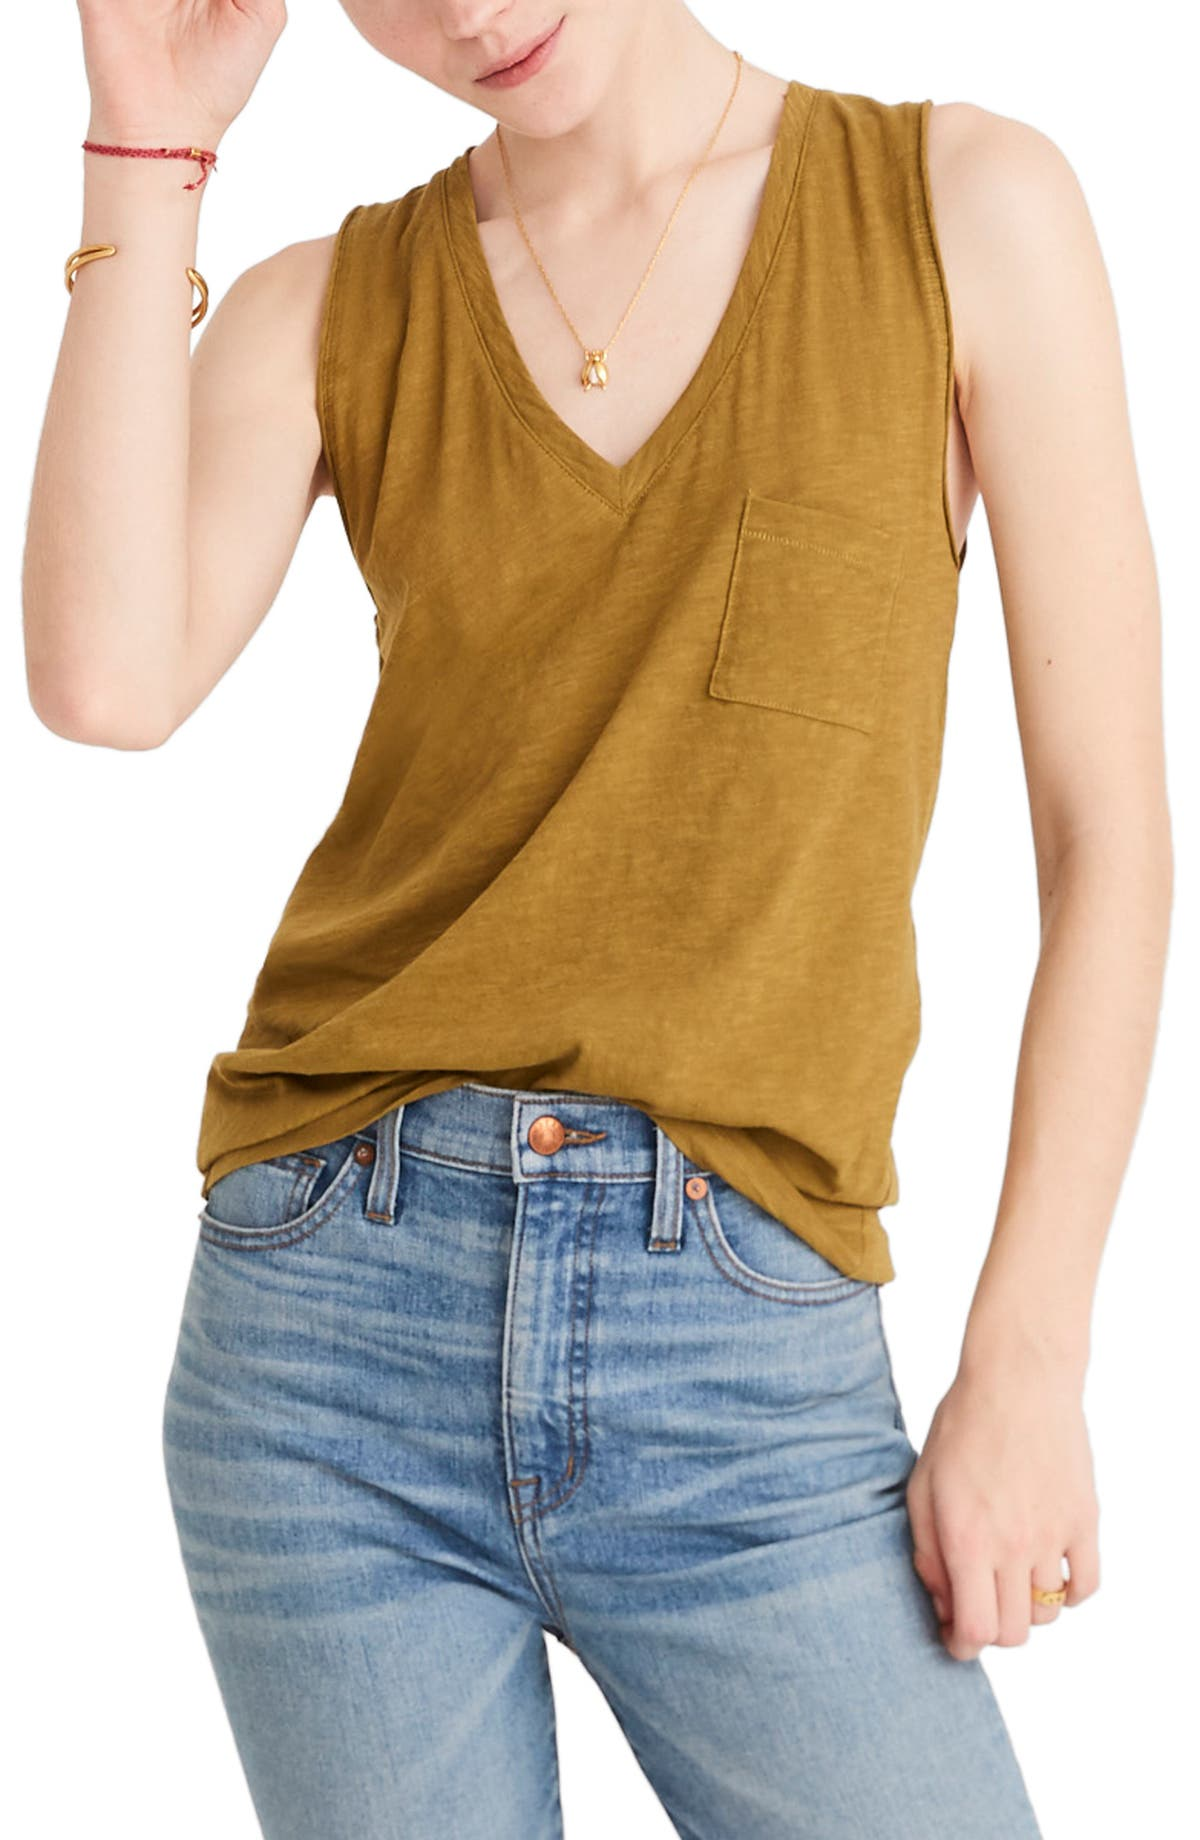 7a1987889c99a Madewell Whisper Cotton V-Neck Tank